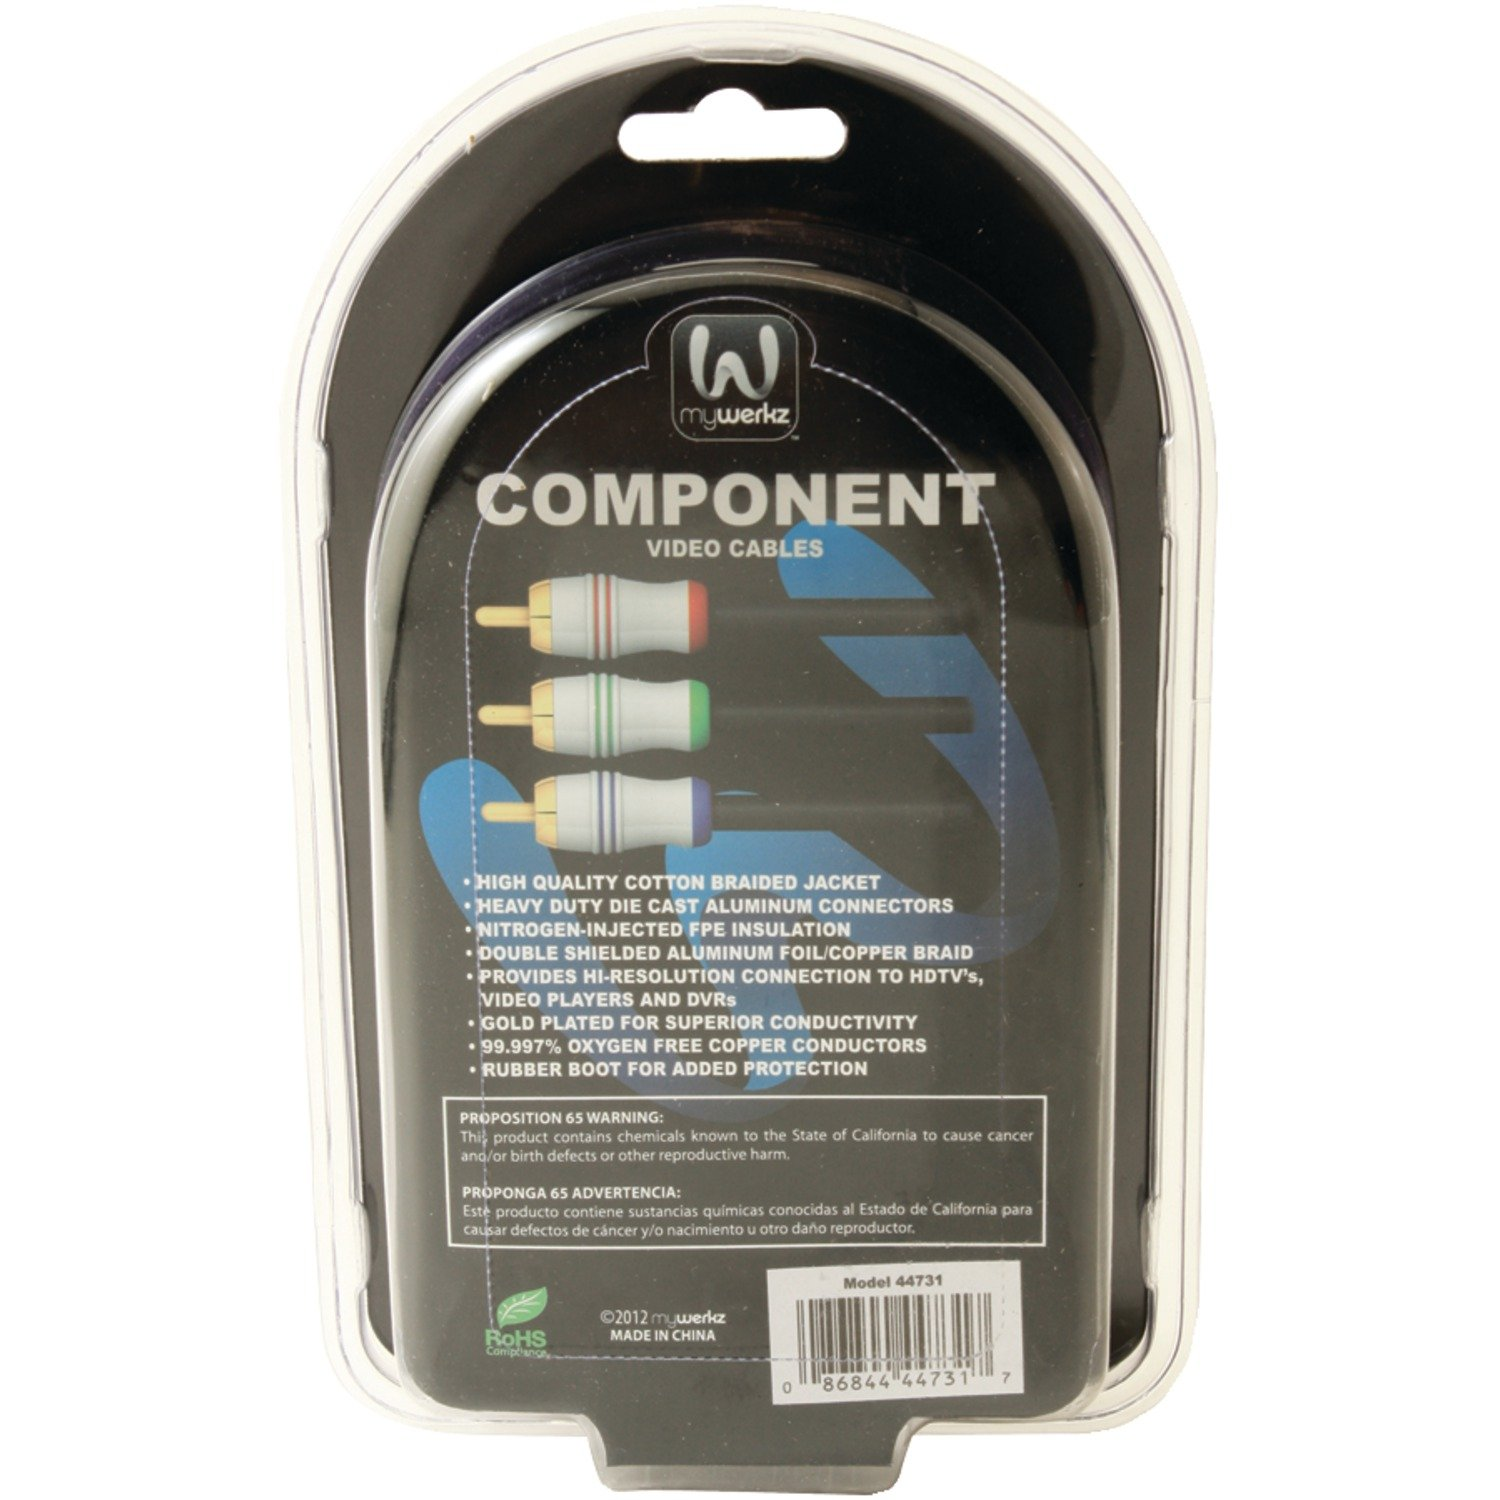 1m mywerkz 44731 700 Series Component Video Cable